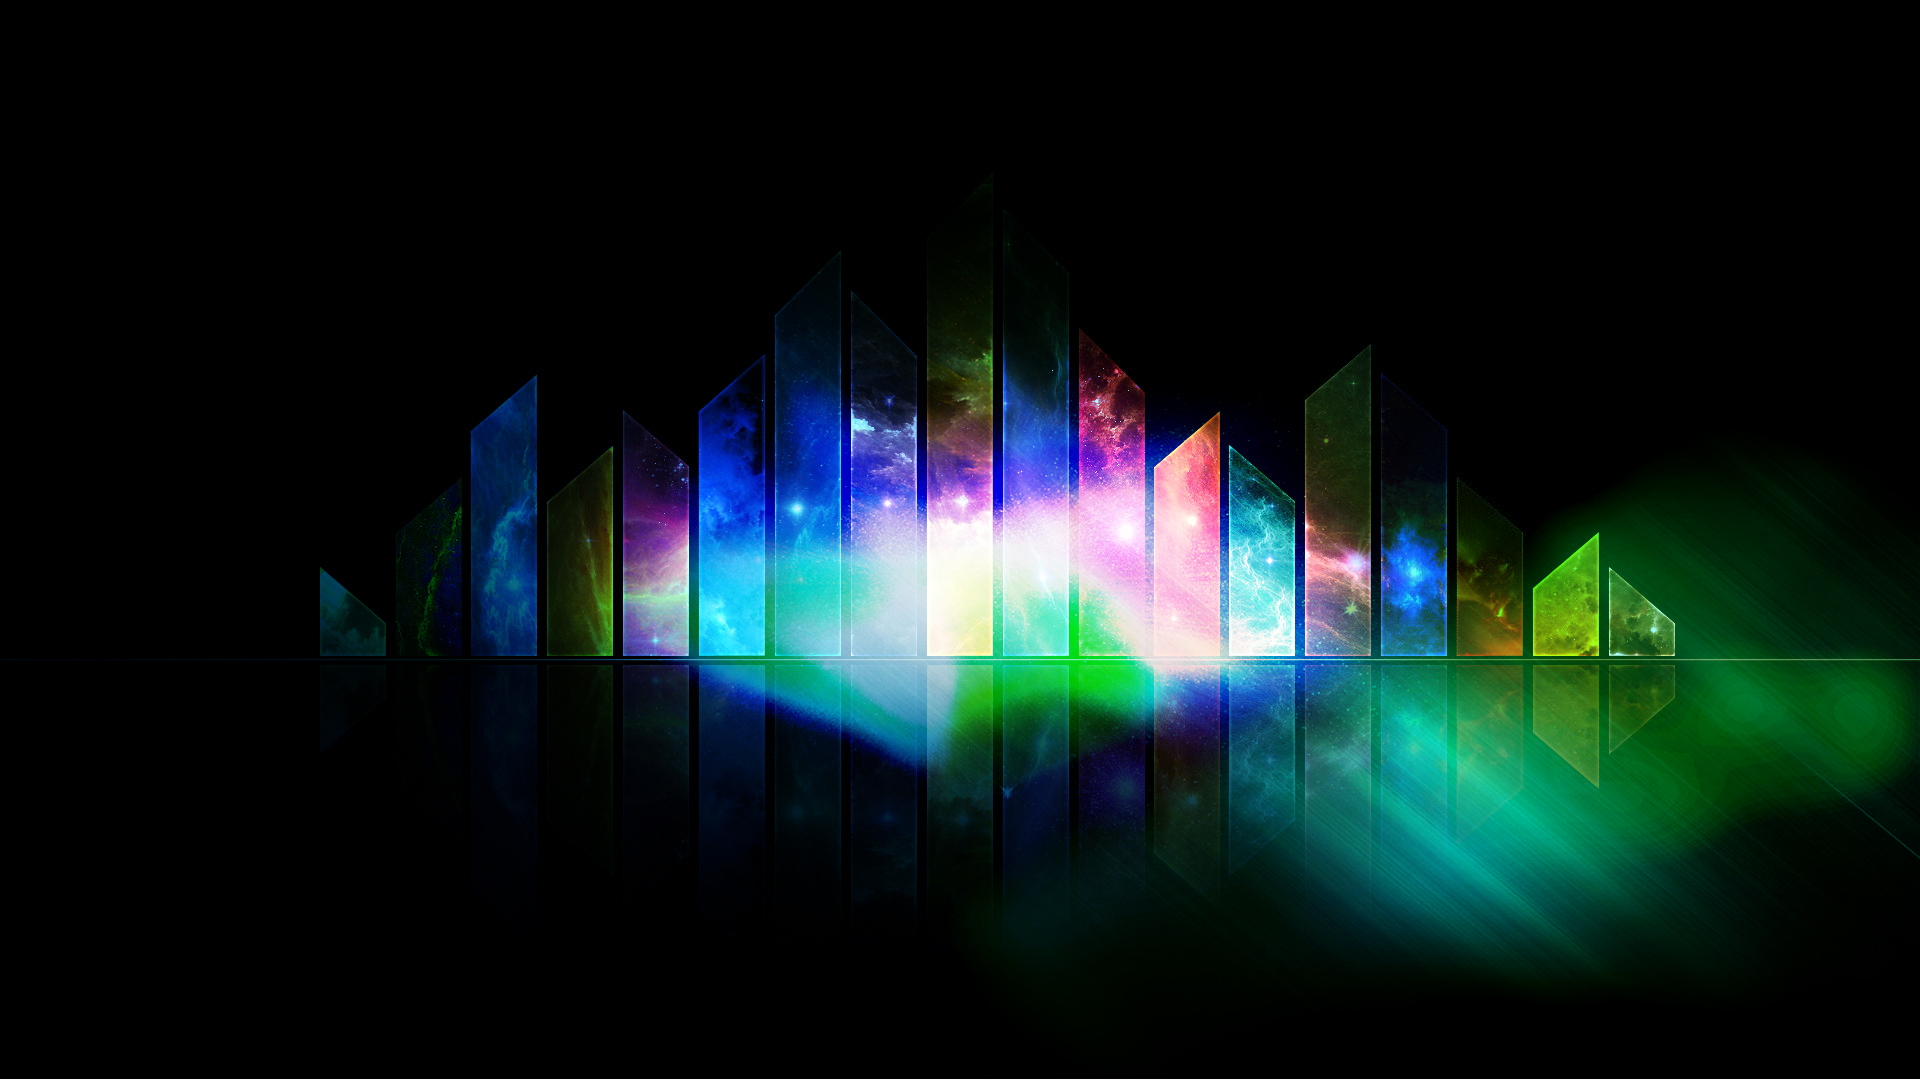 abstract dubstep wallpaper 1080p - photo #7